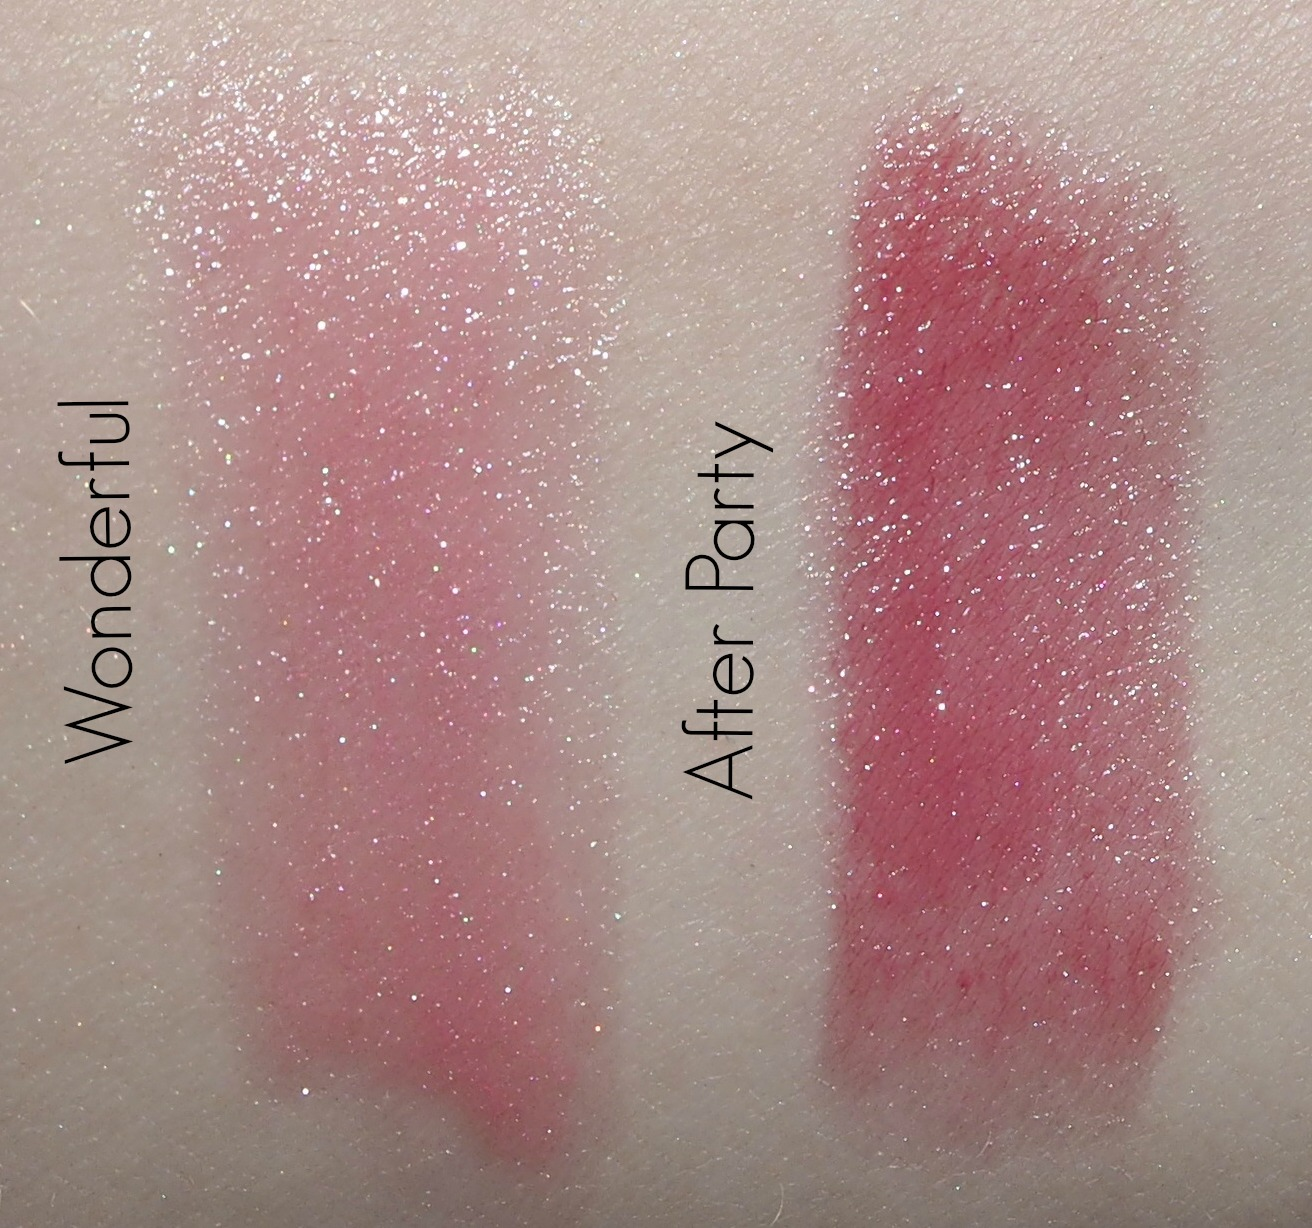 Dior Addict lipstick-Wonderful and After Party swatches